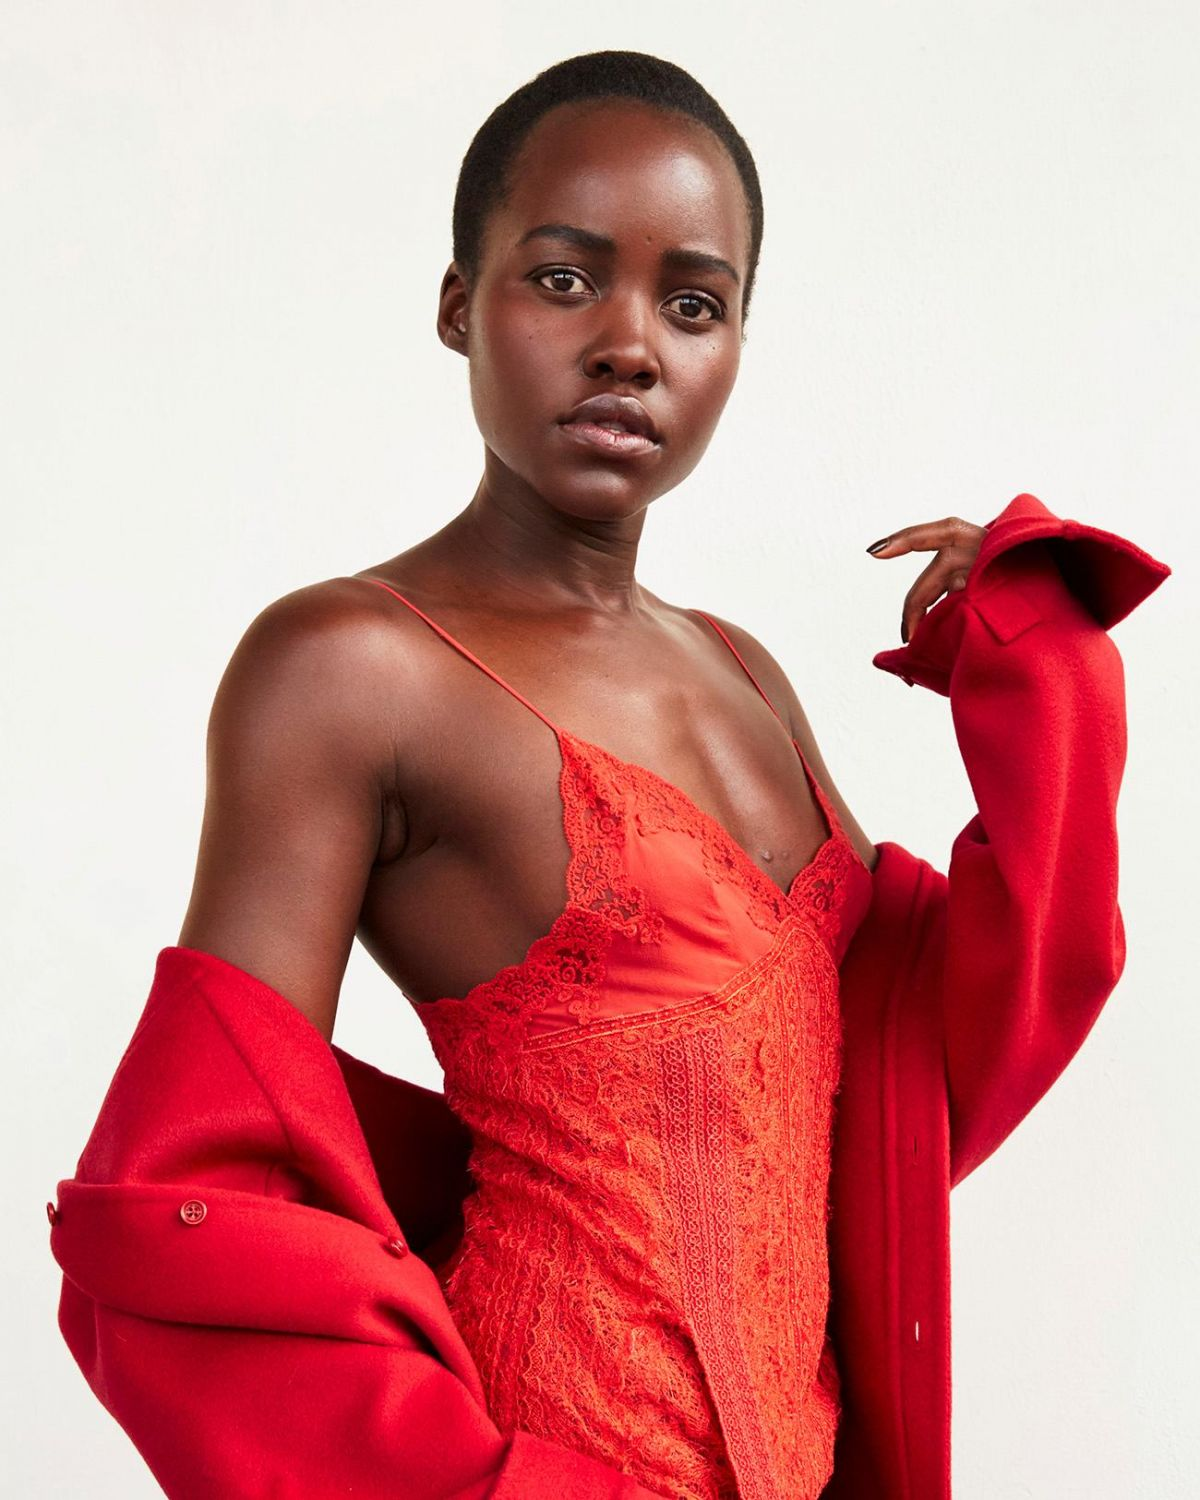 lupita-nyong-o-for-times-magazine-october-2017-7.jpg